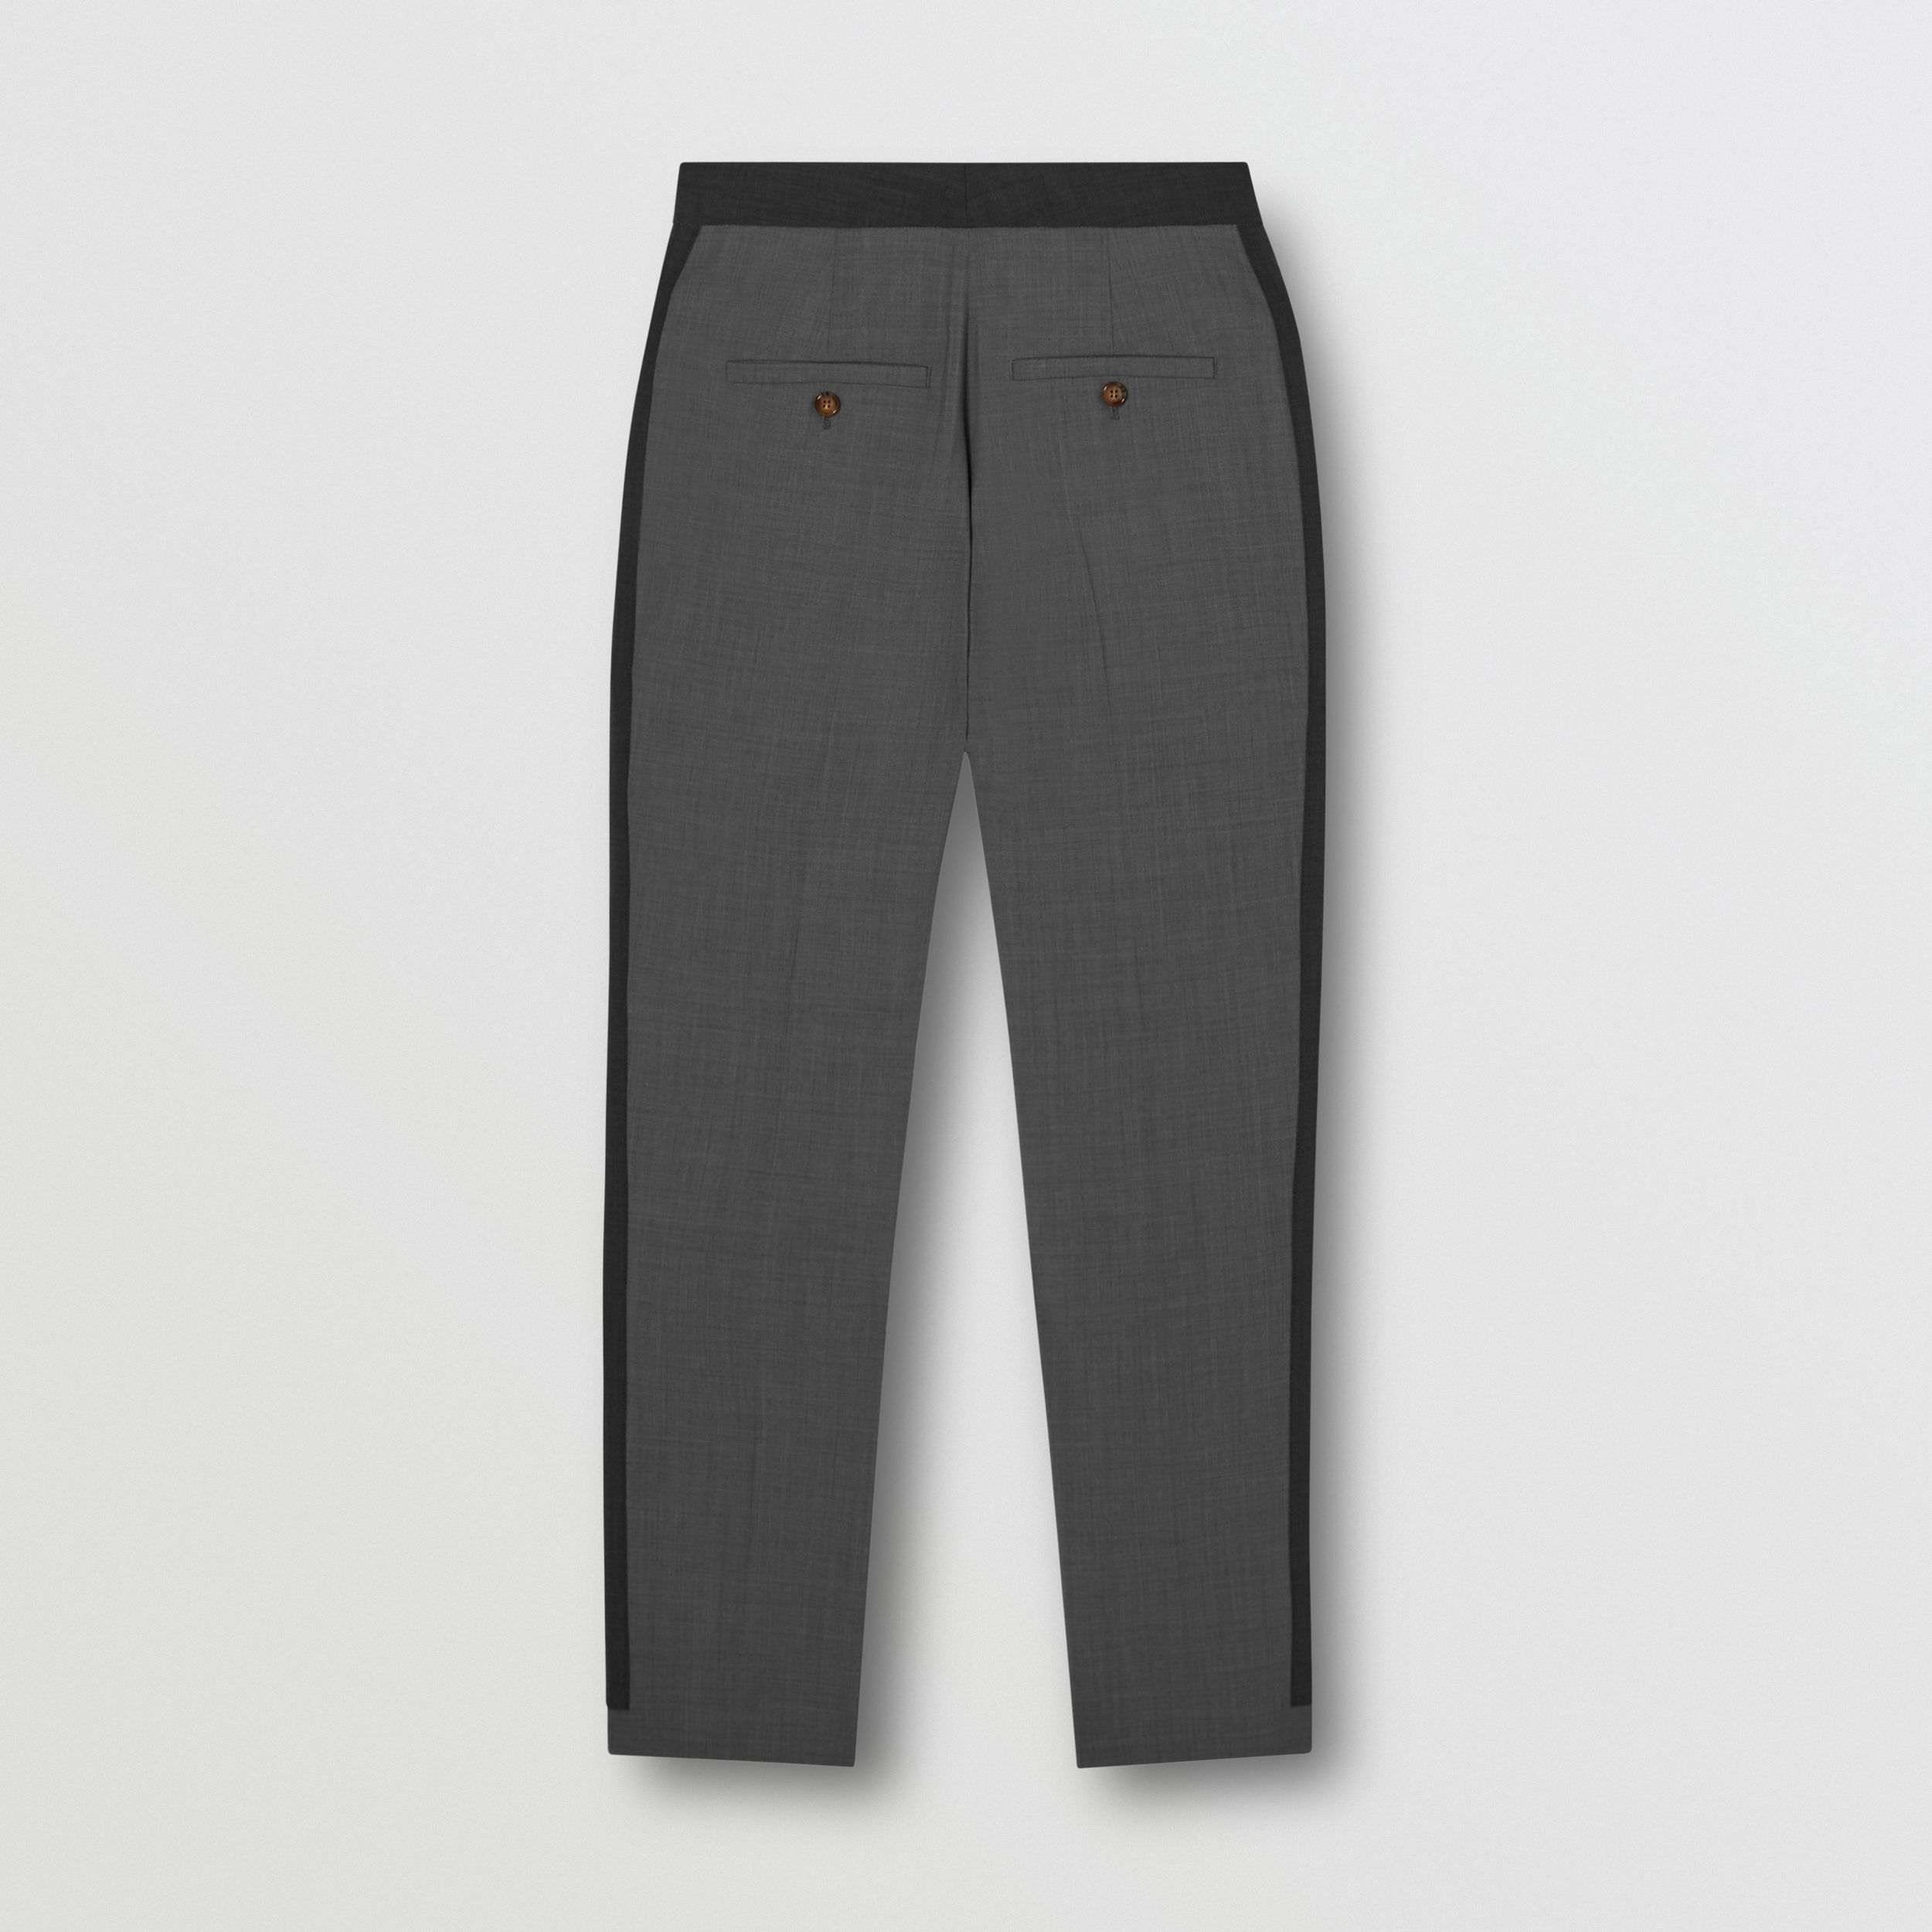 Contrast Stripe Stretch Wool Tailored Trousers in Grey - Women | Burberry - 2